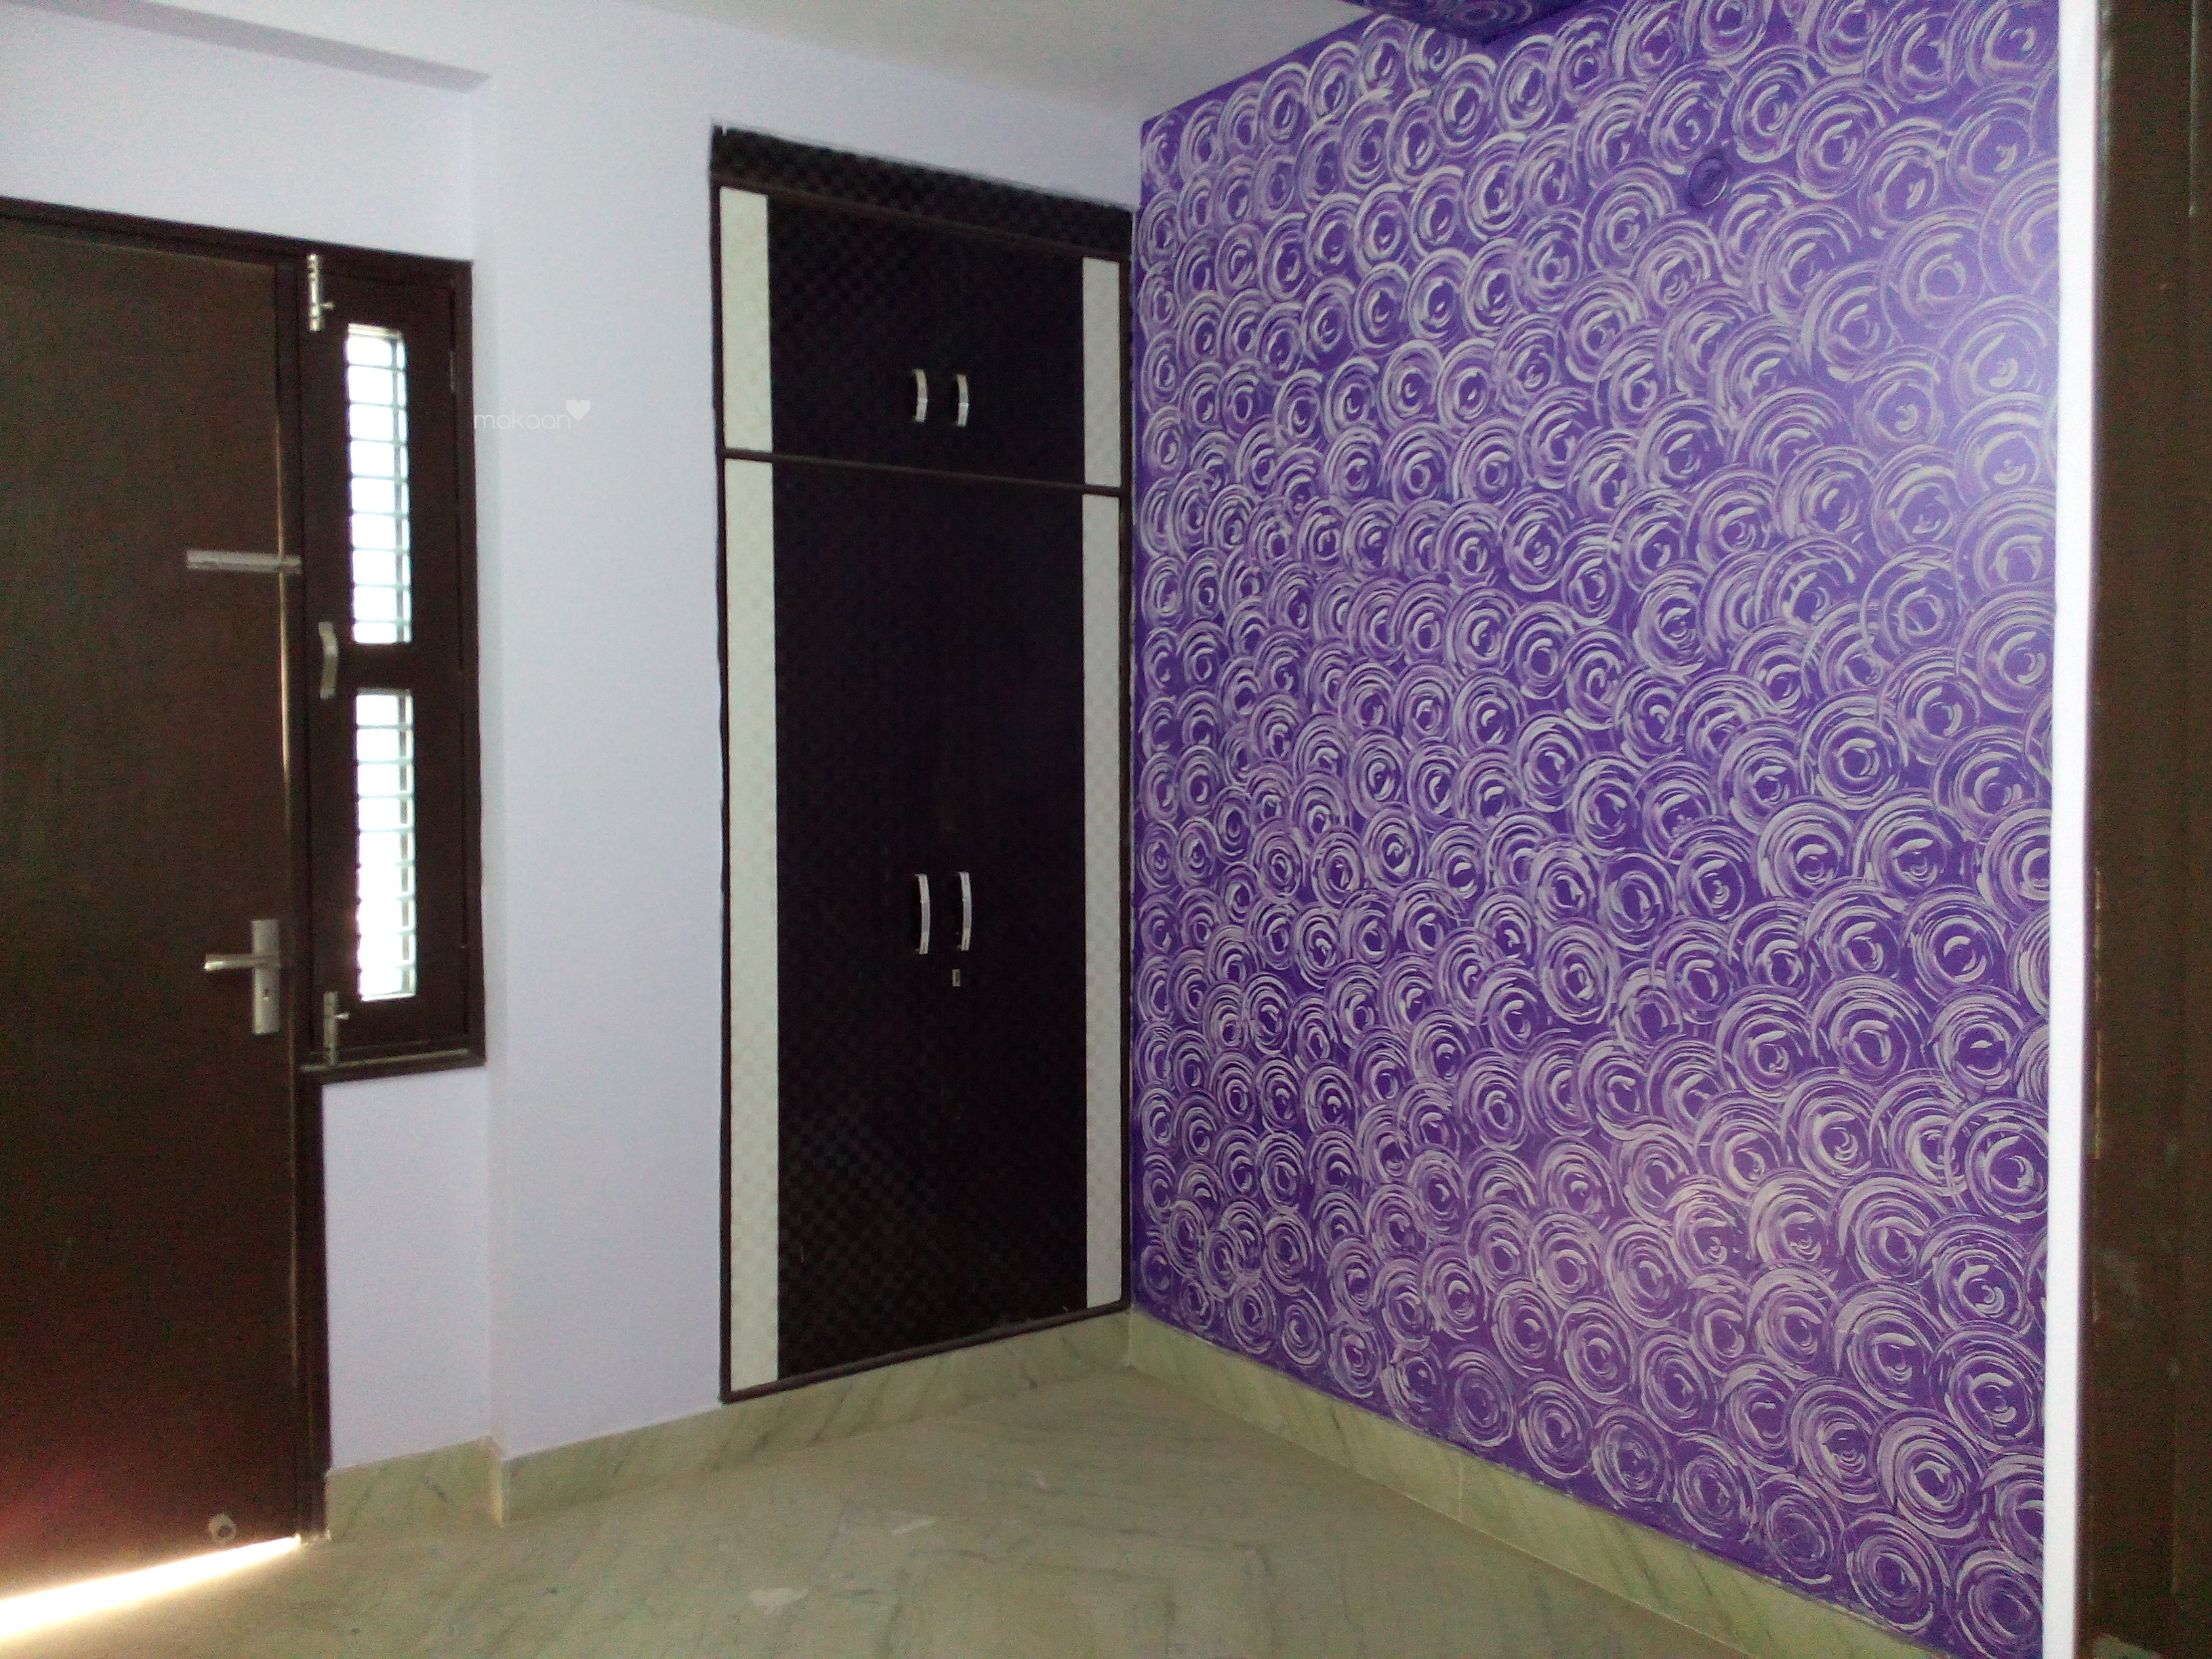 765 sq ft 3BHK 3BHK+2T (765 sq ft) + Study Room Property By Global Real Estate In Project, Uttam Nagar